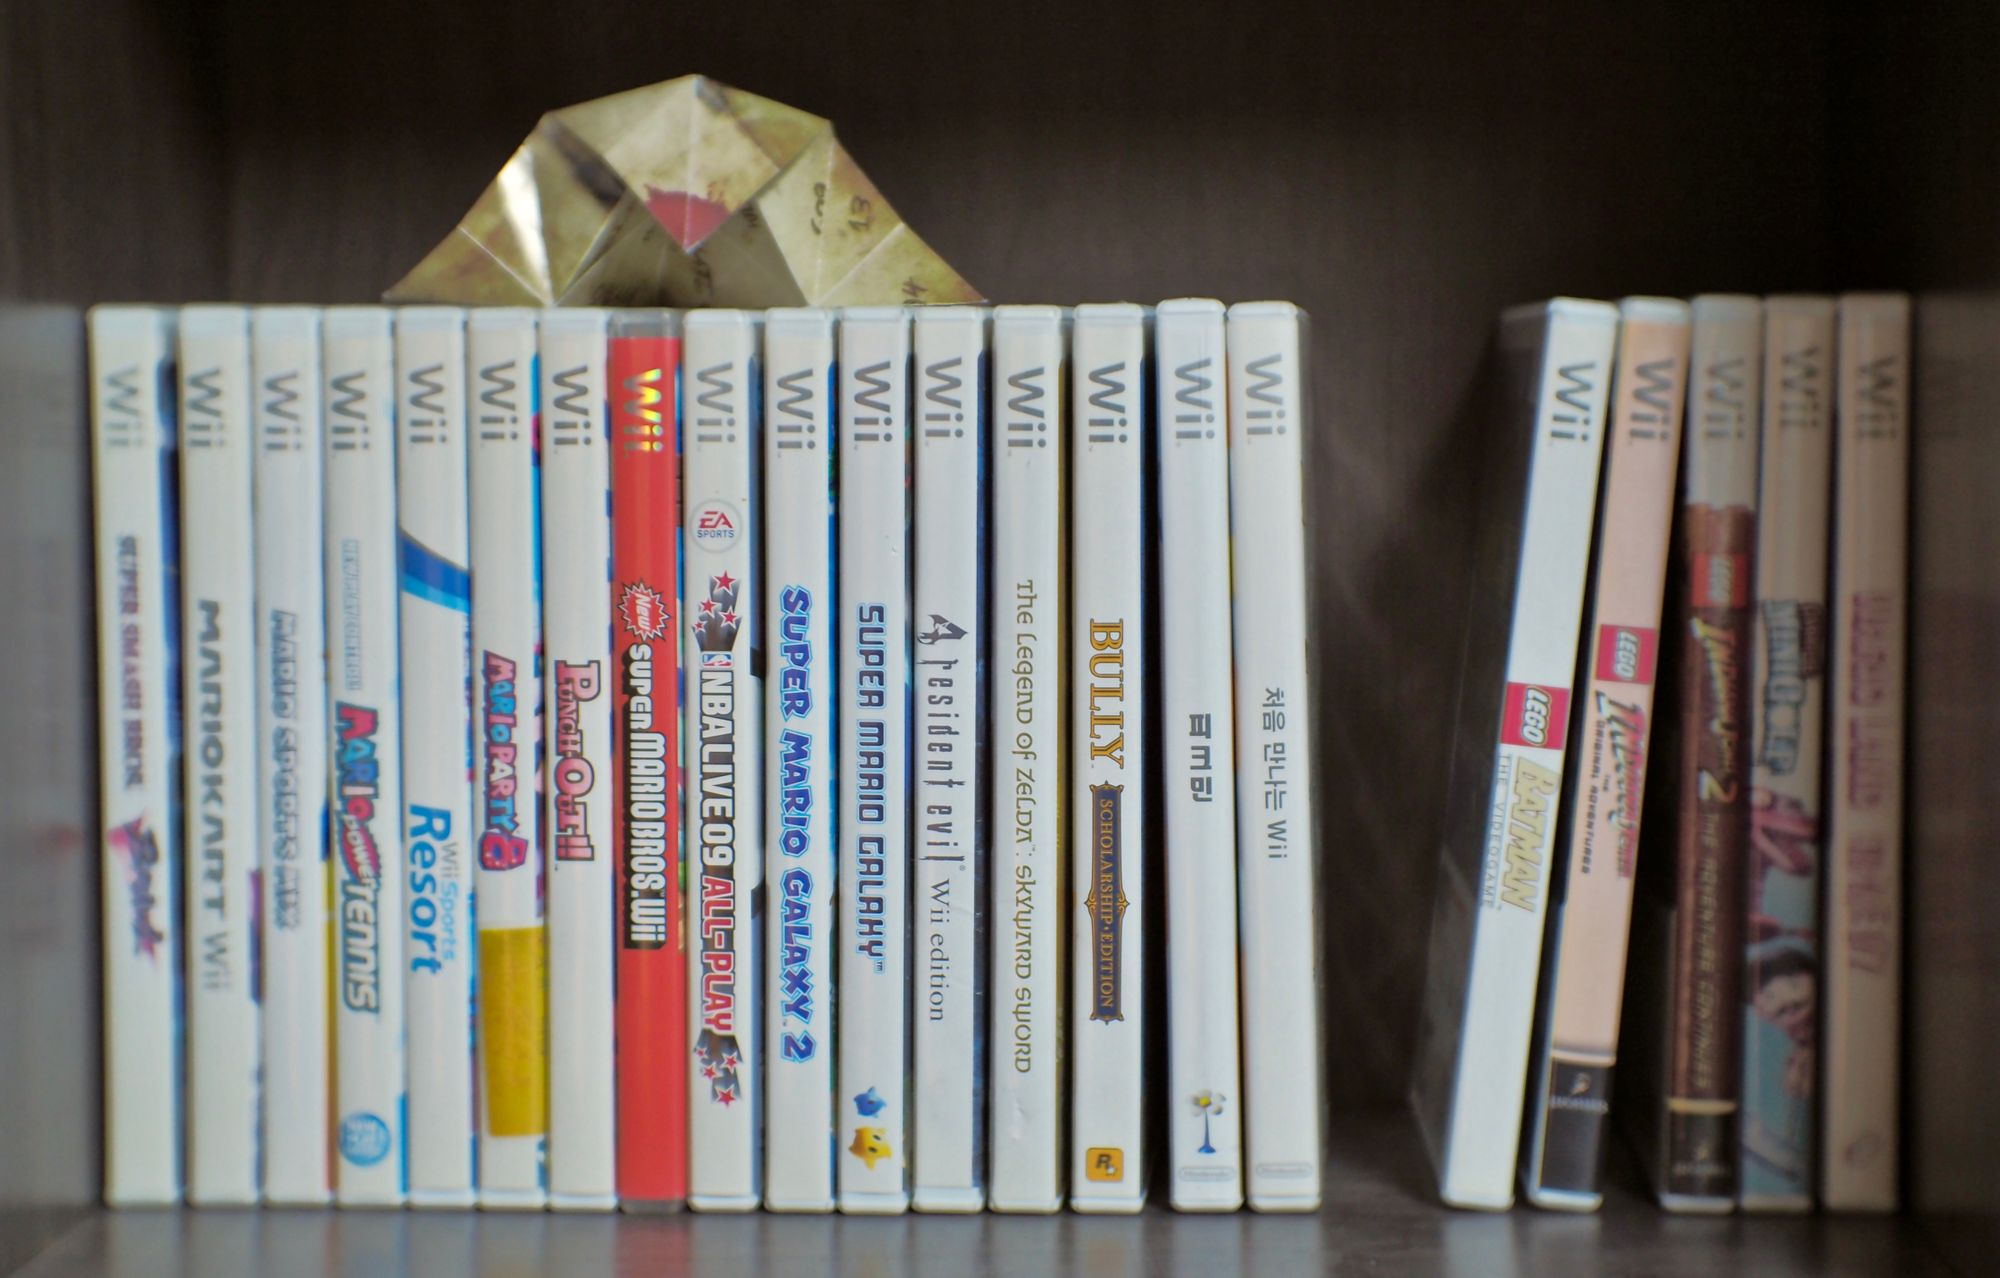 Image showing several Wii titles placed together in a bookcase.